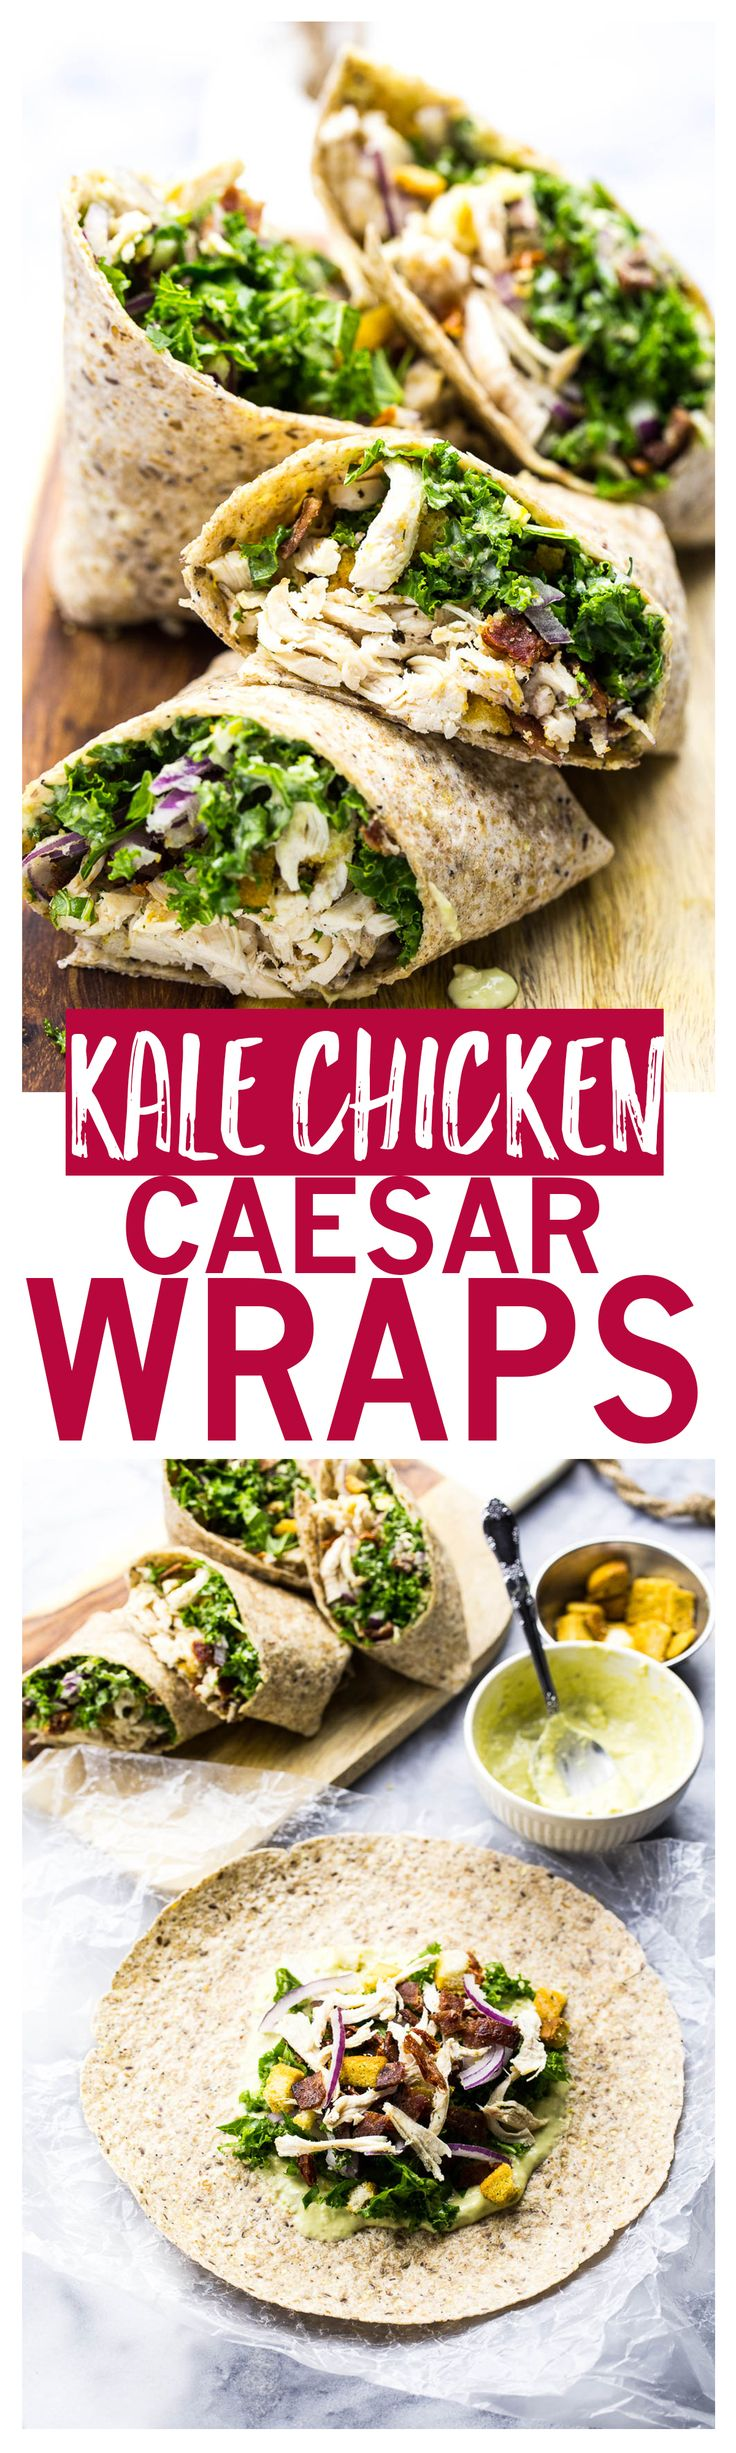 Chicken and Kale Caesar Wraps are the perfect on-the-go lunch and include a lighter vegetarian avocado caesar dressing!